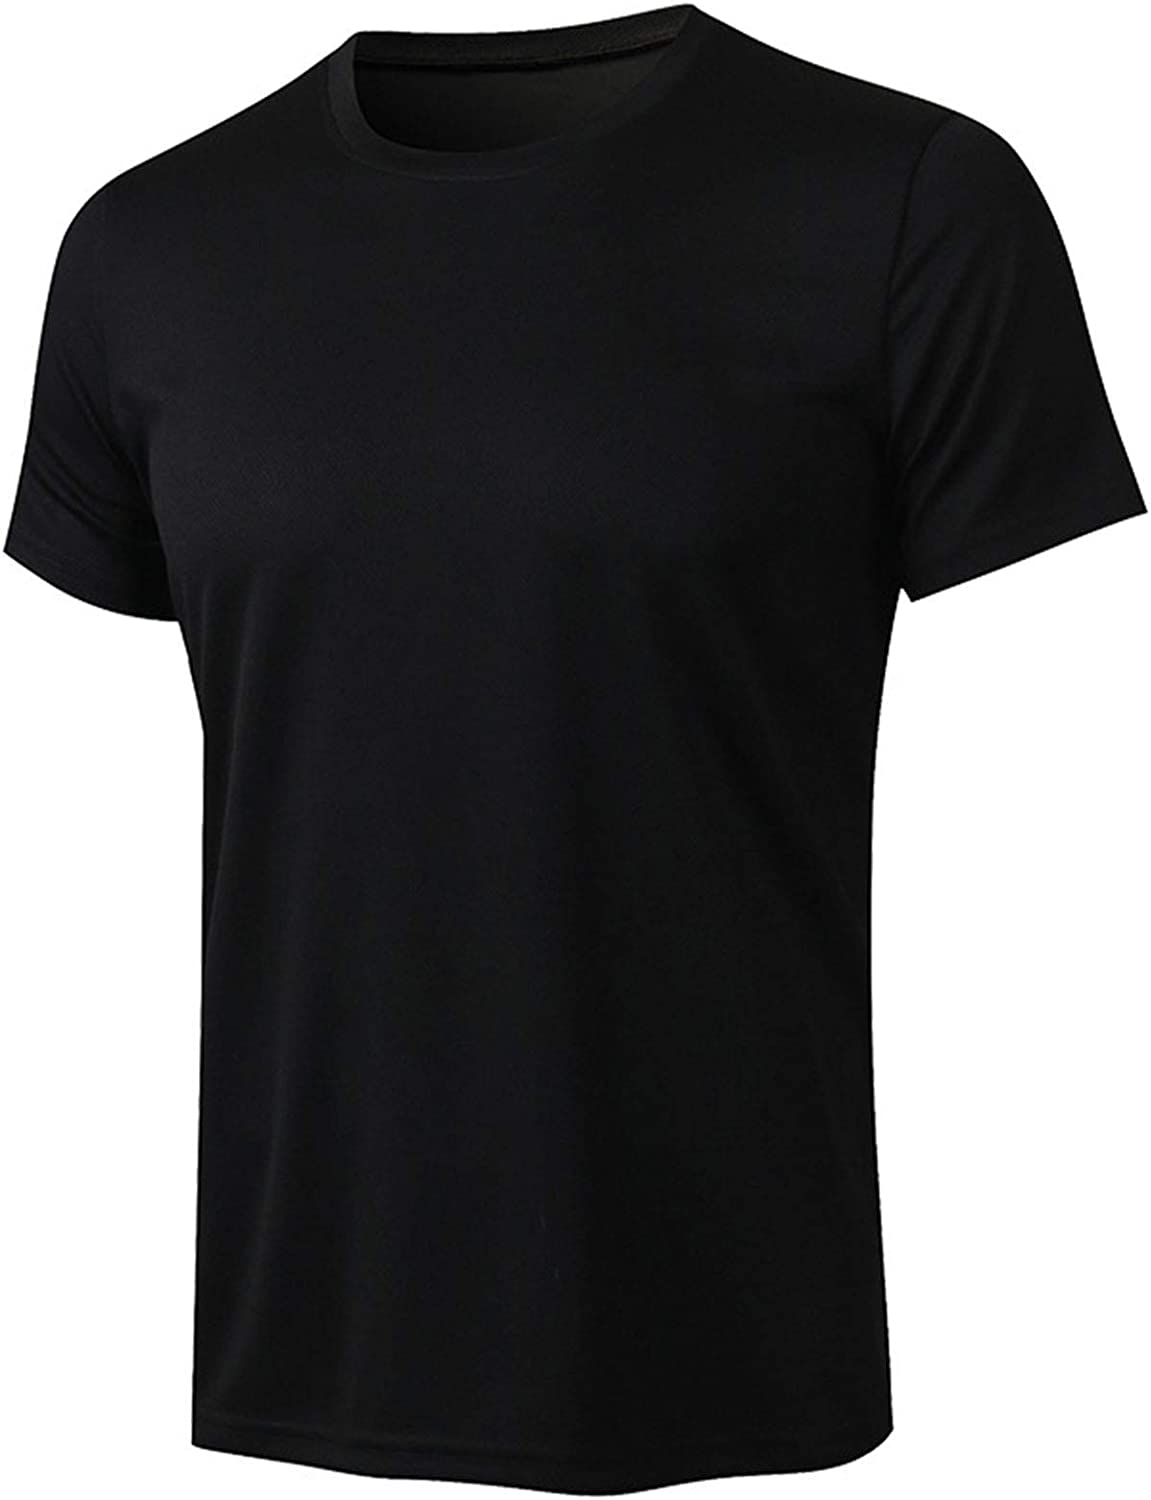 Men's Cool Dry Short Sleeve latest Baselayer Compression Sports 4 years warranty Shirts